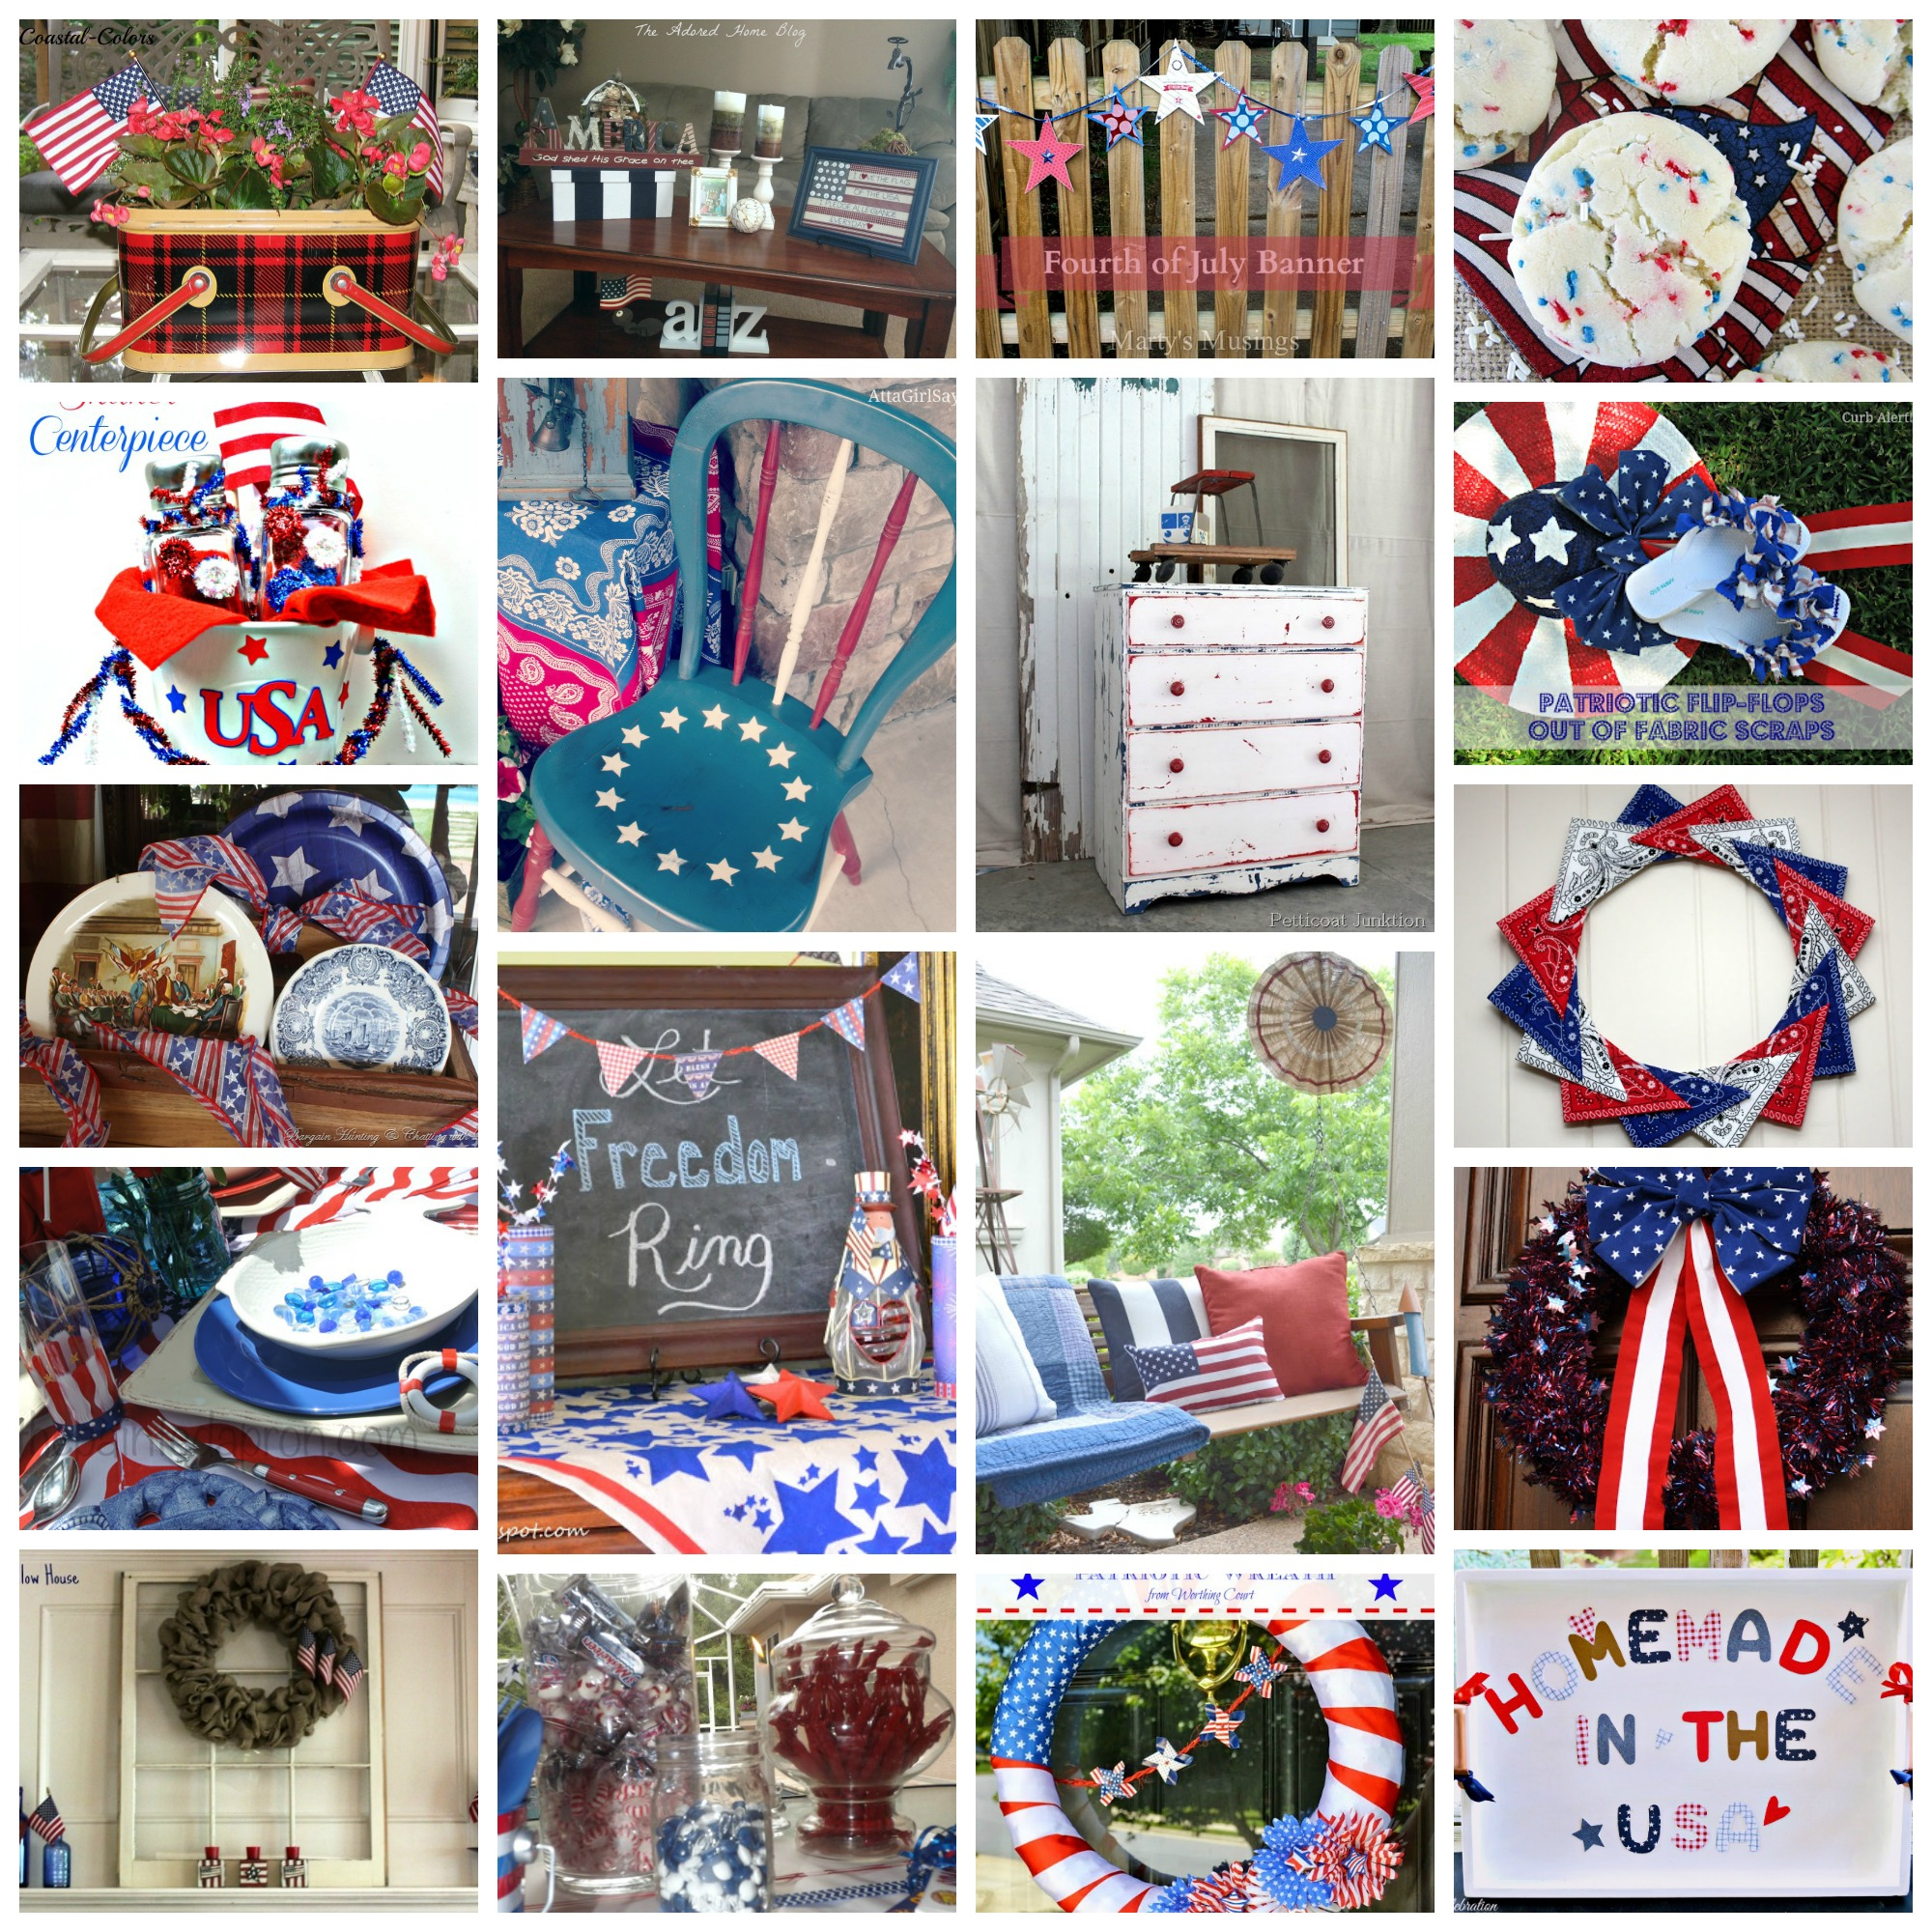 18 Patriotic Ideas for July 4th